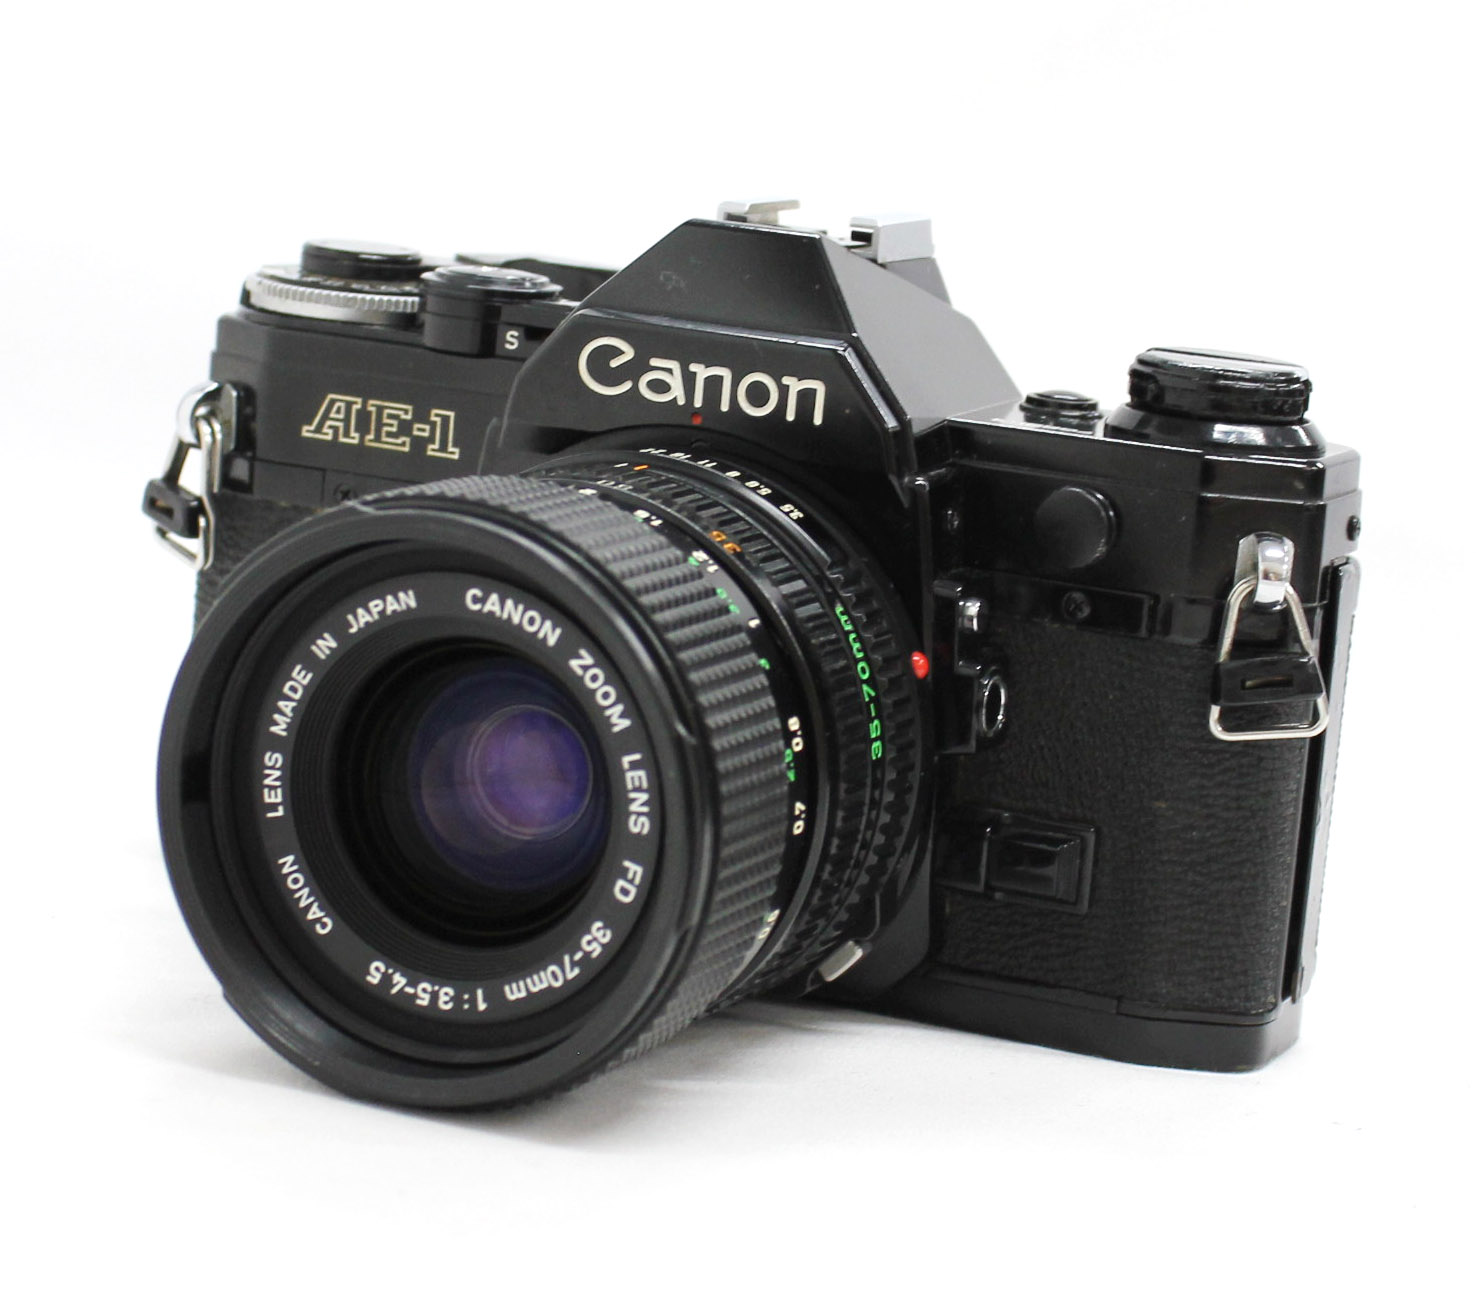 Canon AE-1 35mm SLR Film Camera Black with New FD 35-70mm F/3.5-4.5 Bonus Lens from Japan